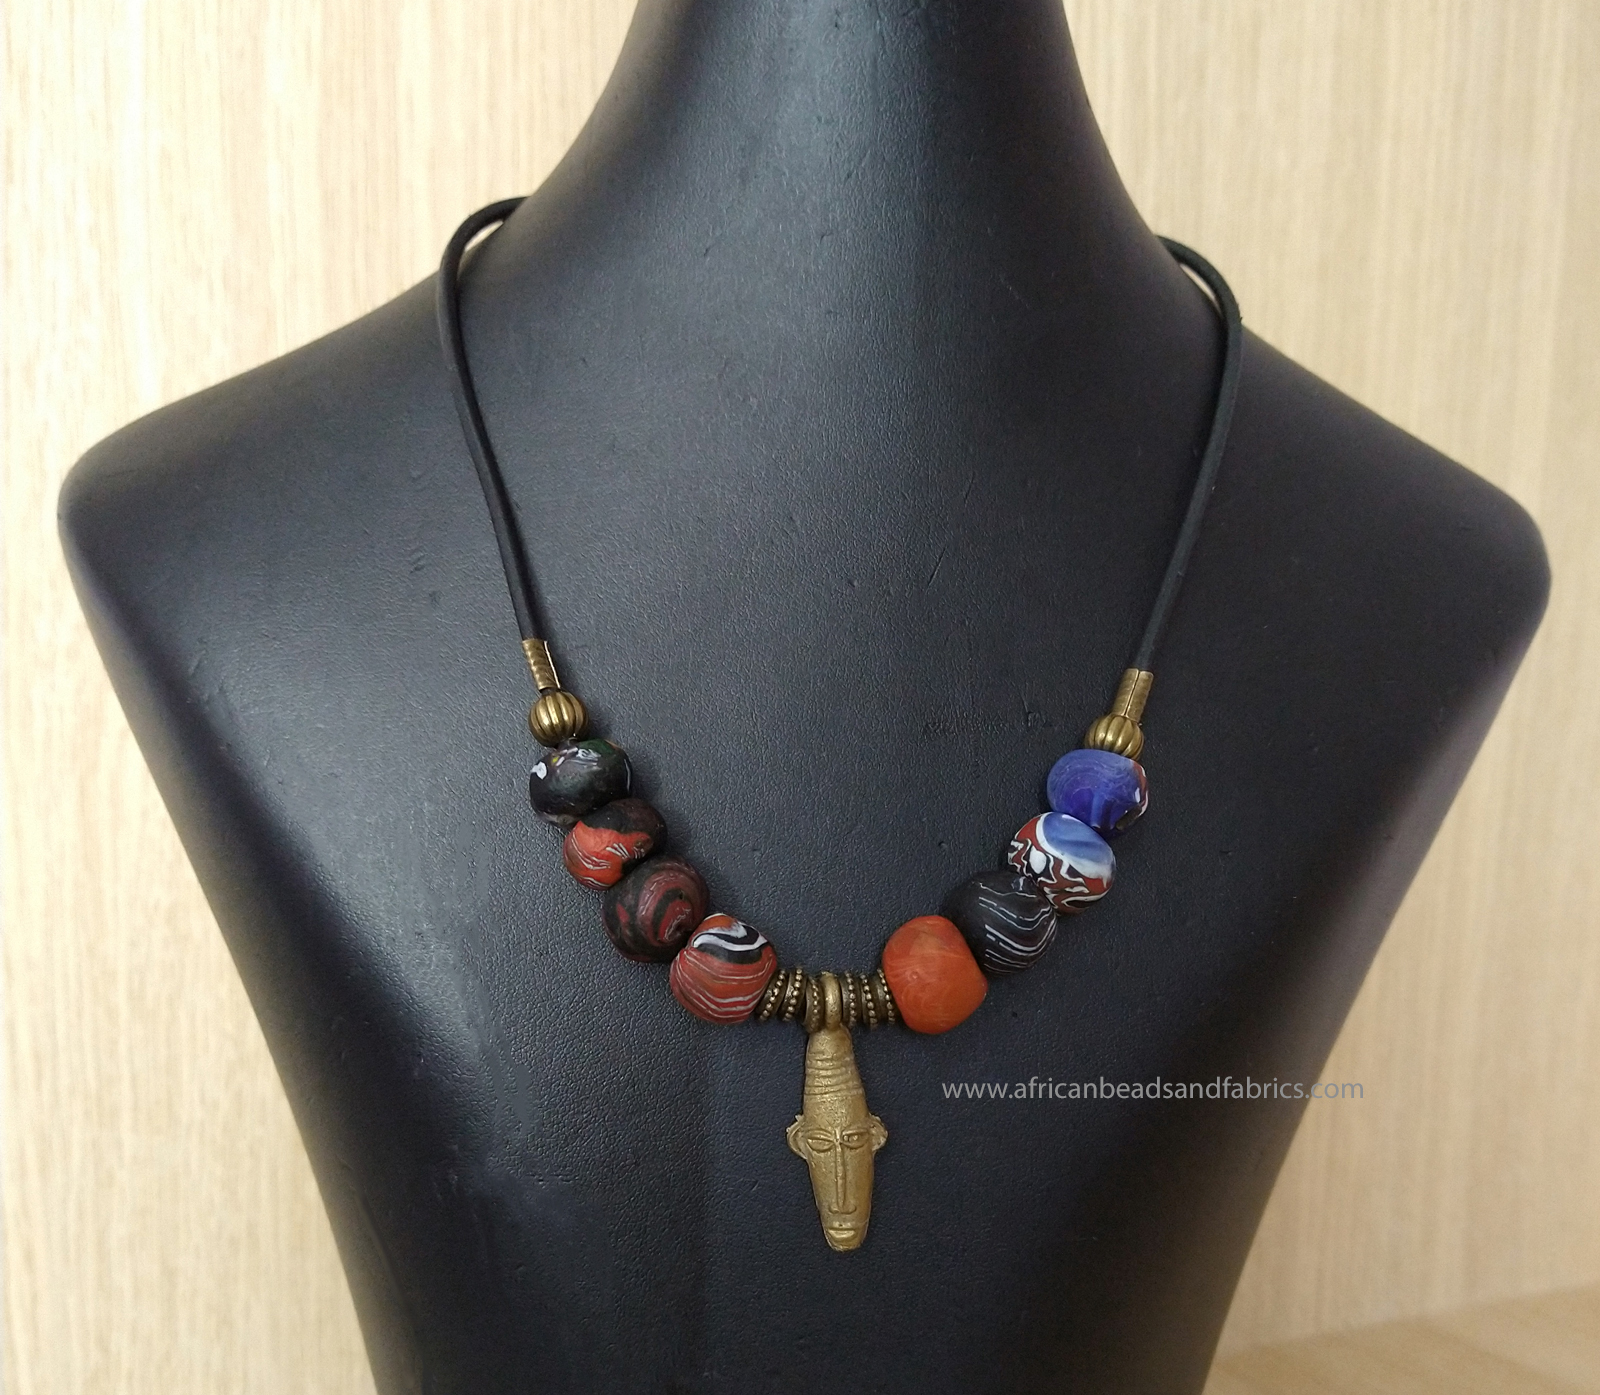 beaded-necklace-with-tribal-mask-pendant-22